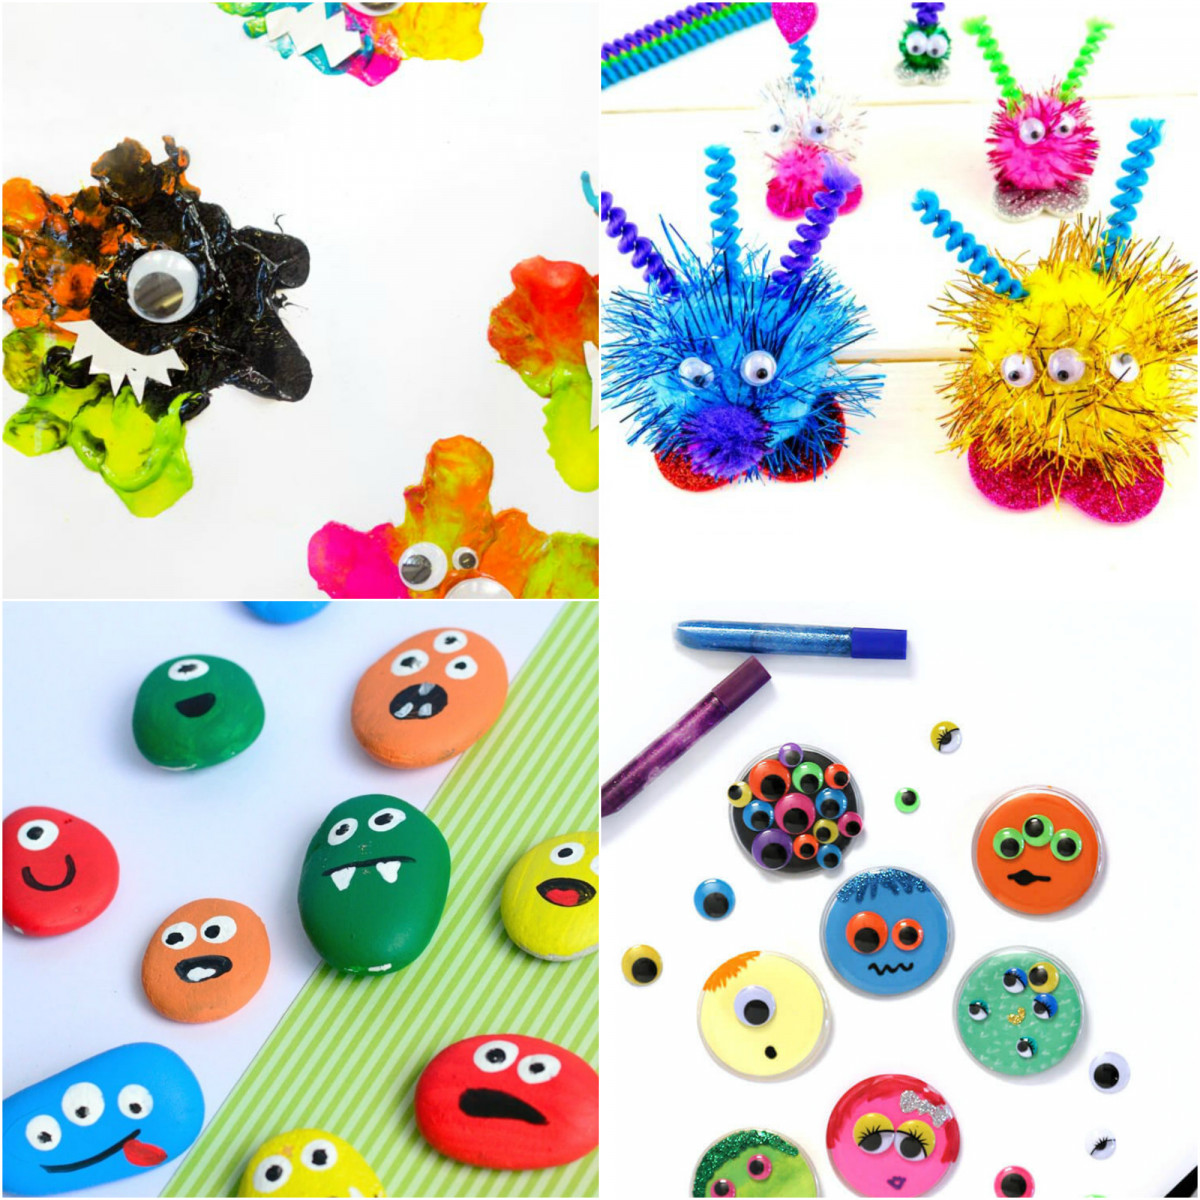 15 Monster Crafts For Kids